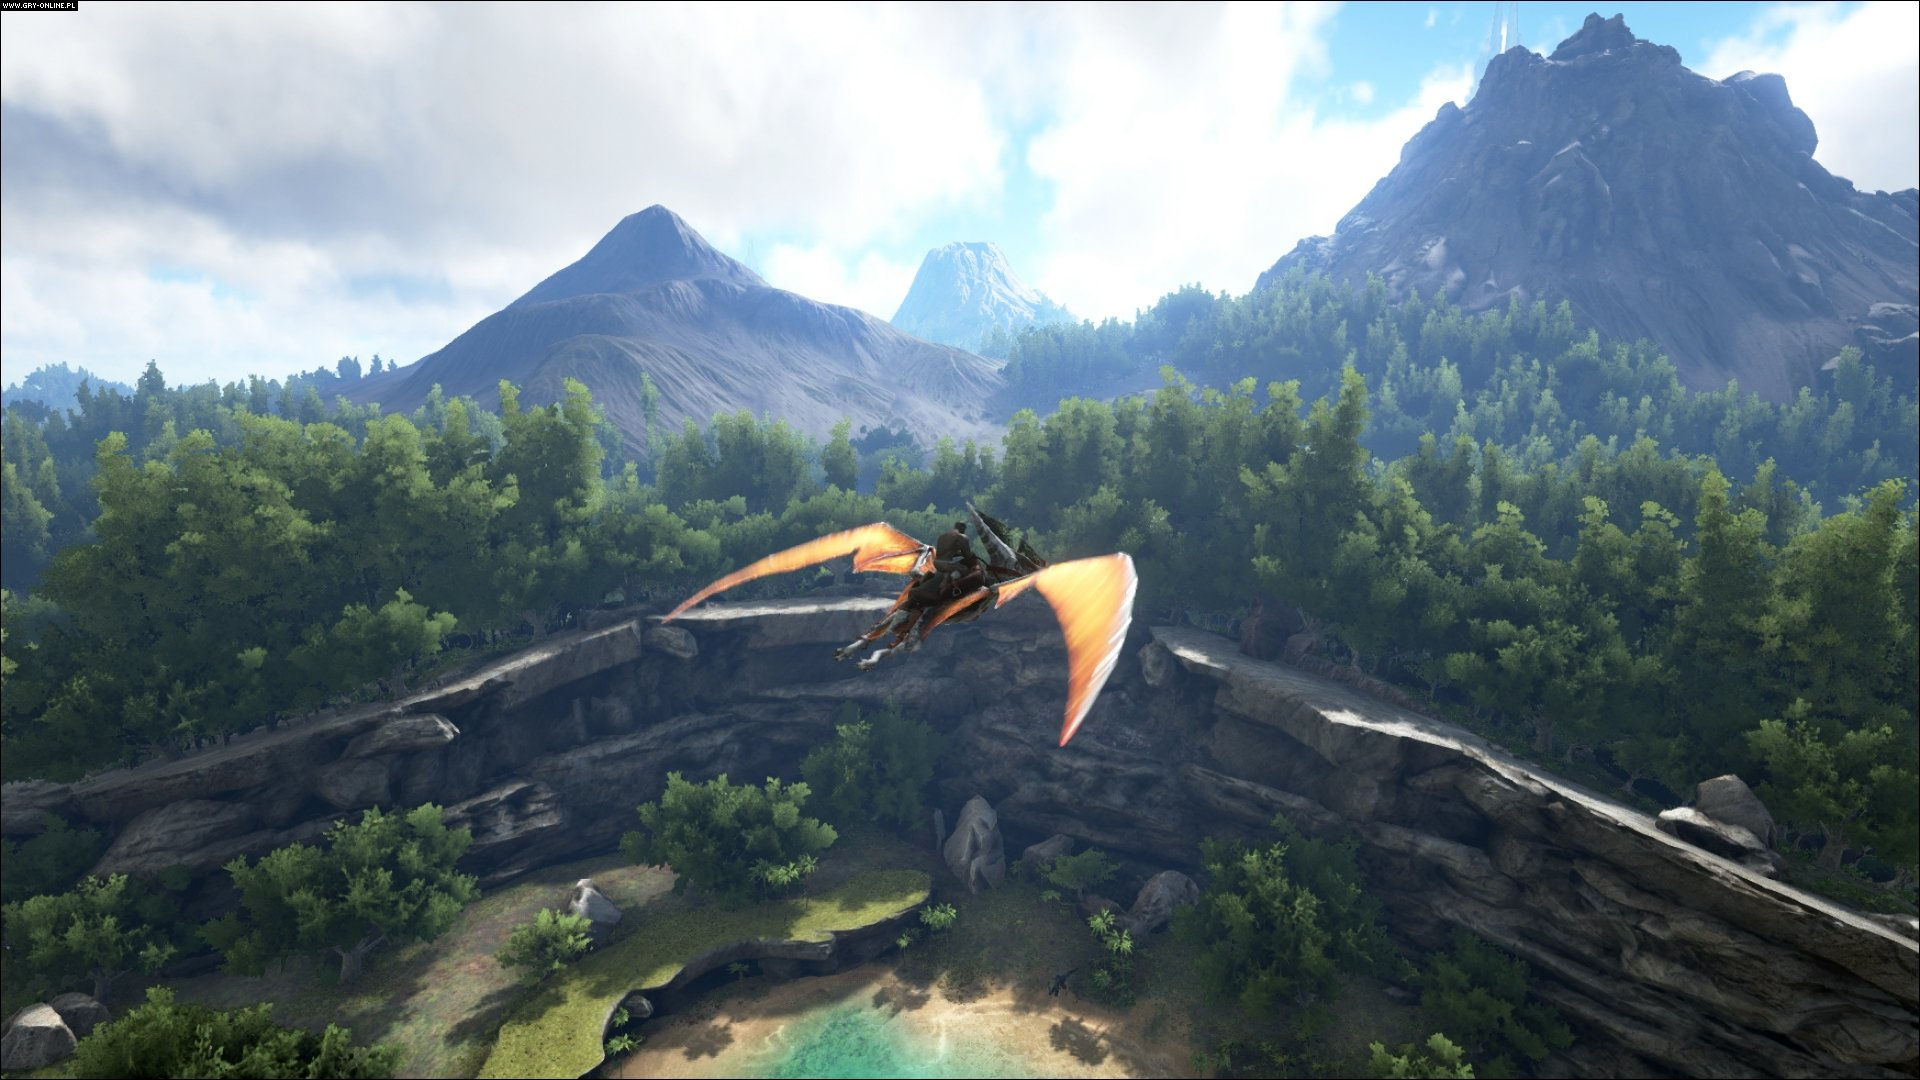 ARK: Survival Evolved PC, PS4, XONE Gry Screen 139/148, Studio Wildcard